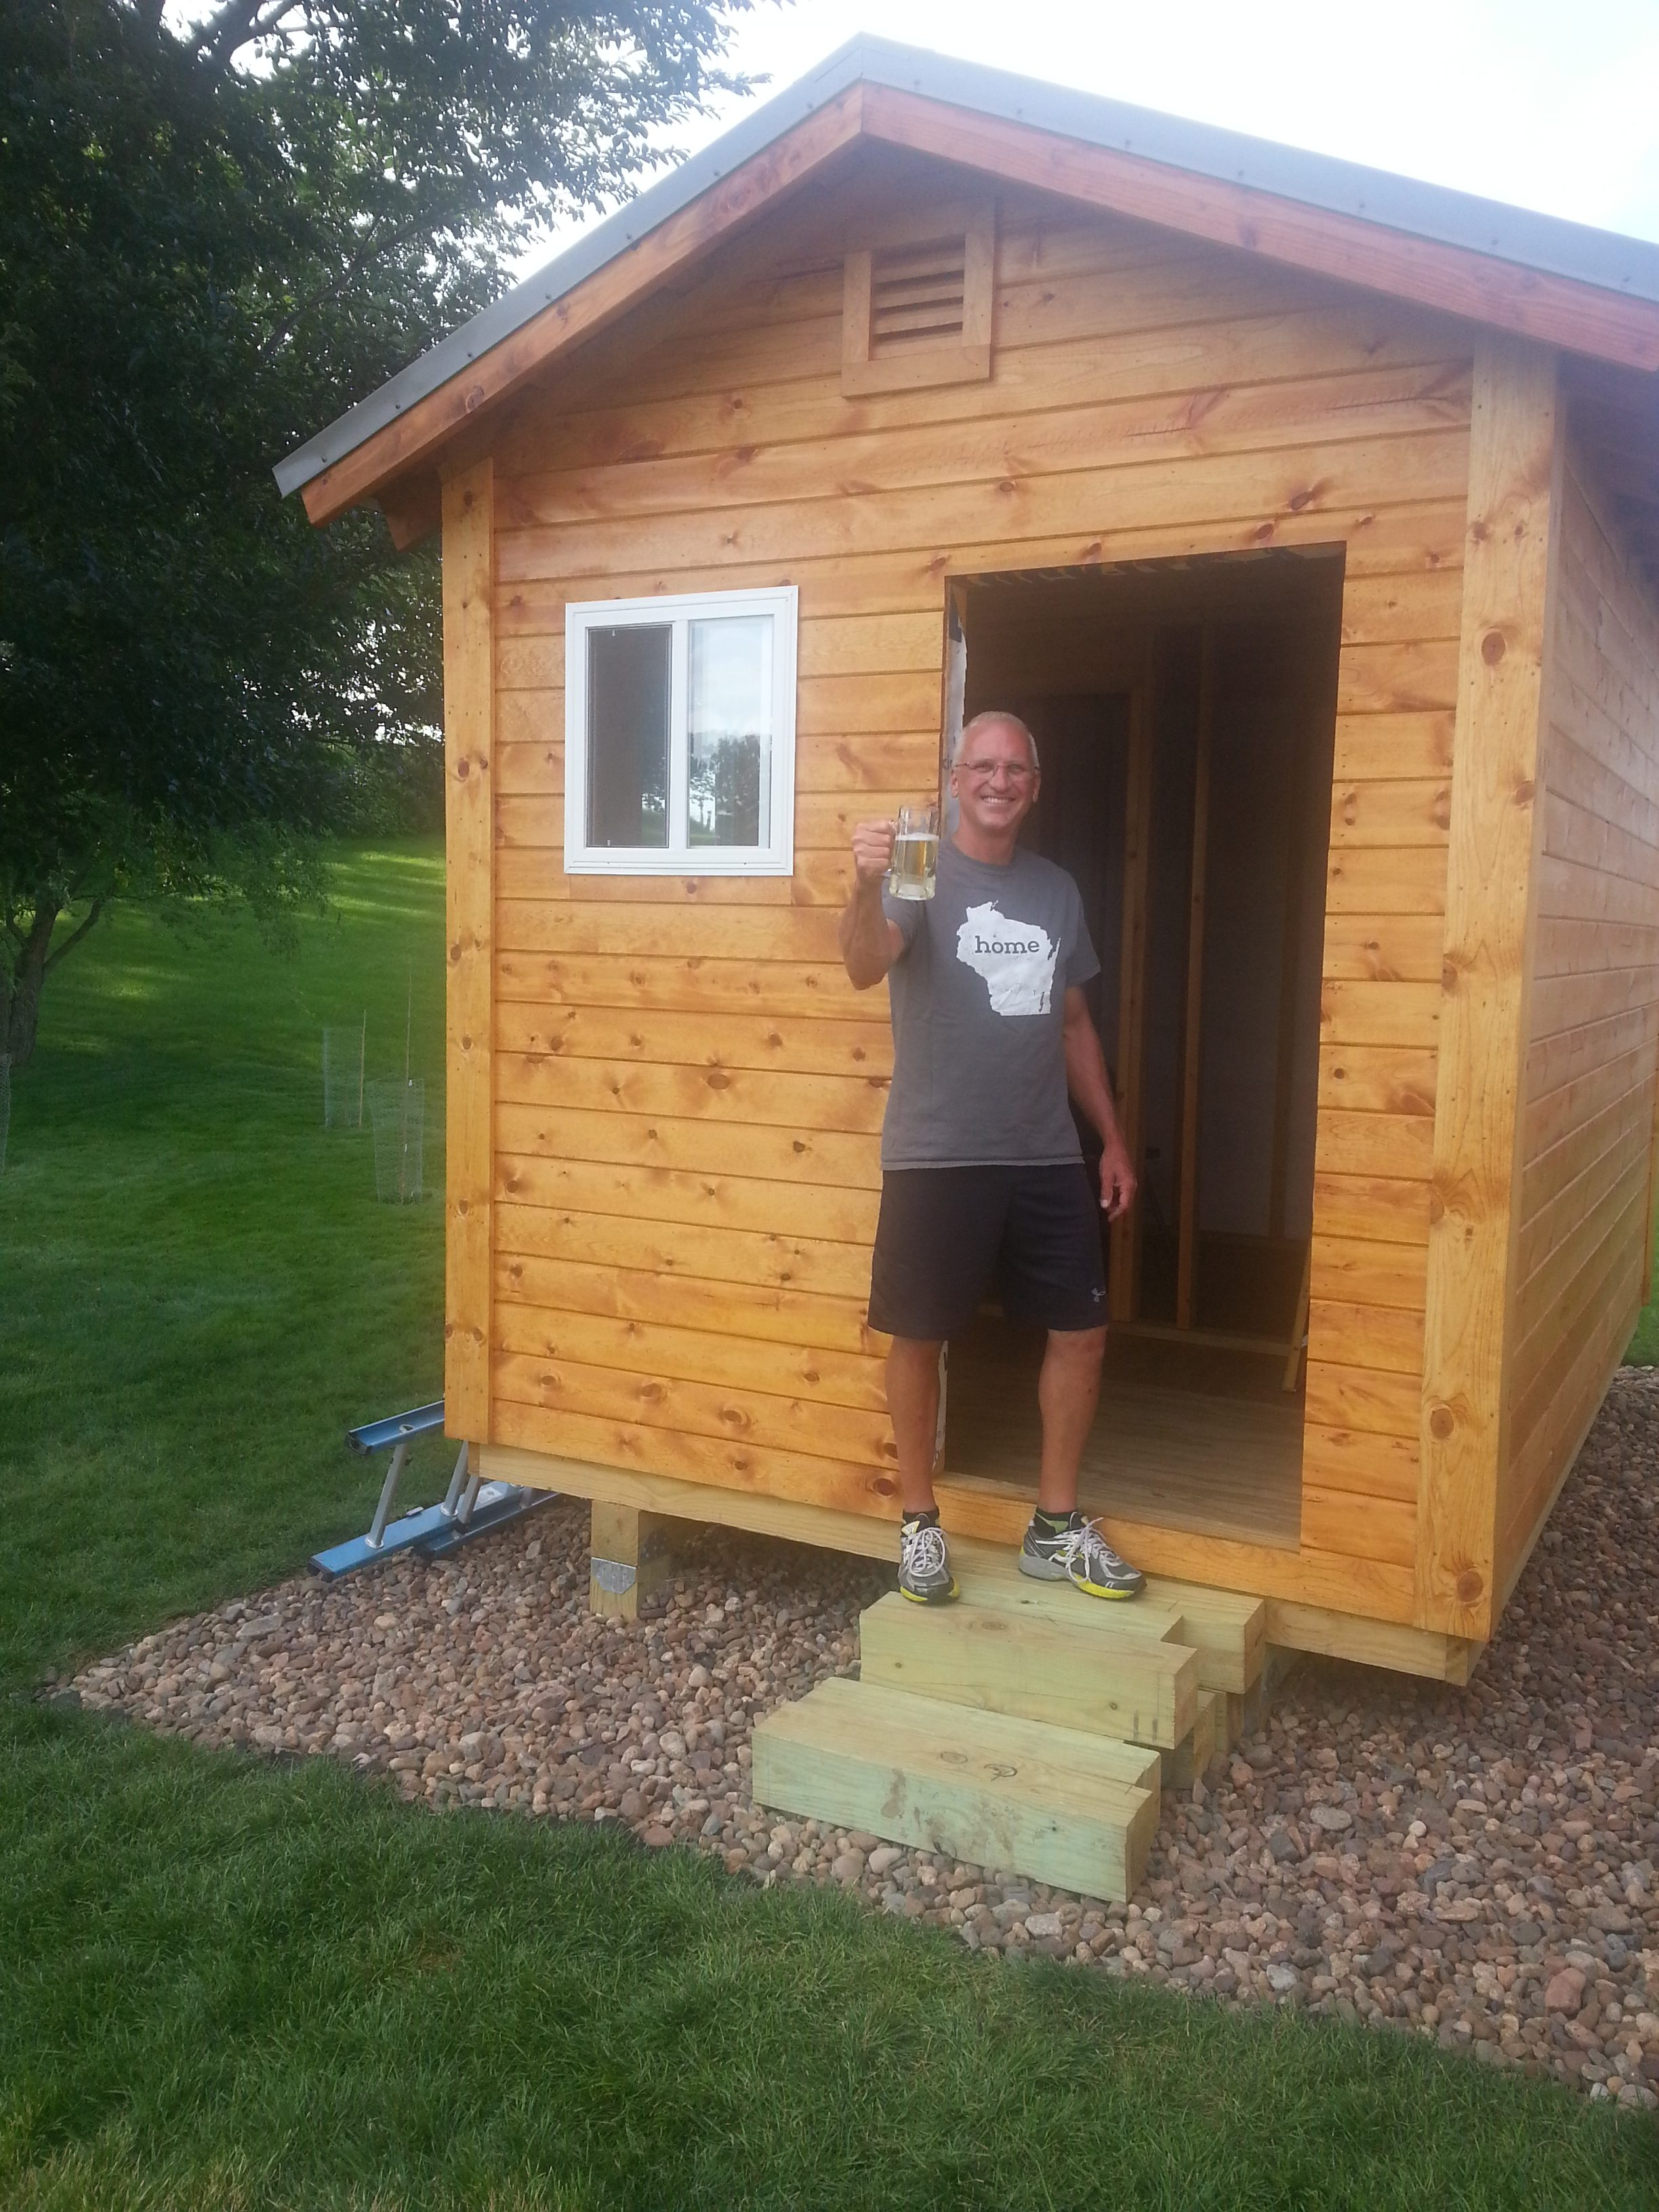 Backyard Sauna Plans enjoying the sauna building journey with a cold one in hand - saunatimes